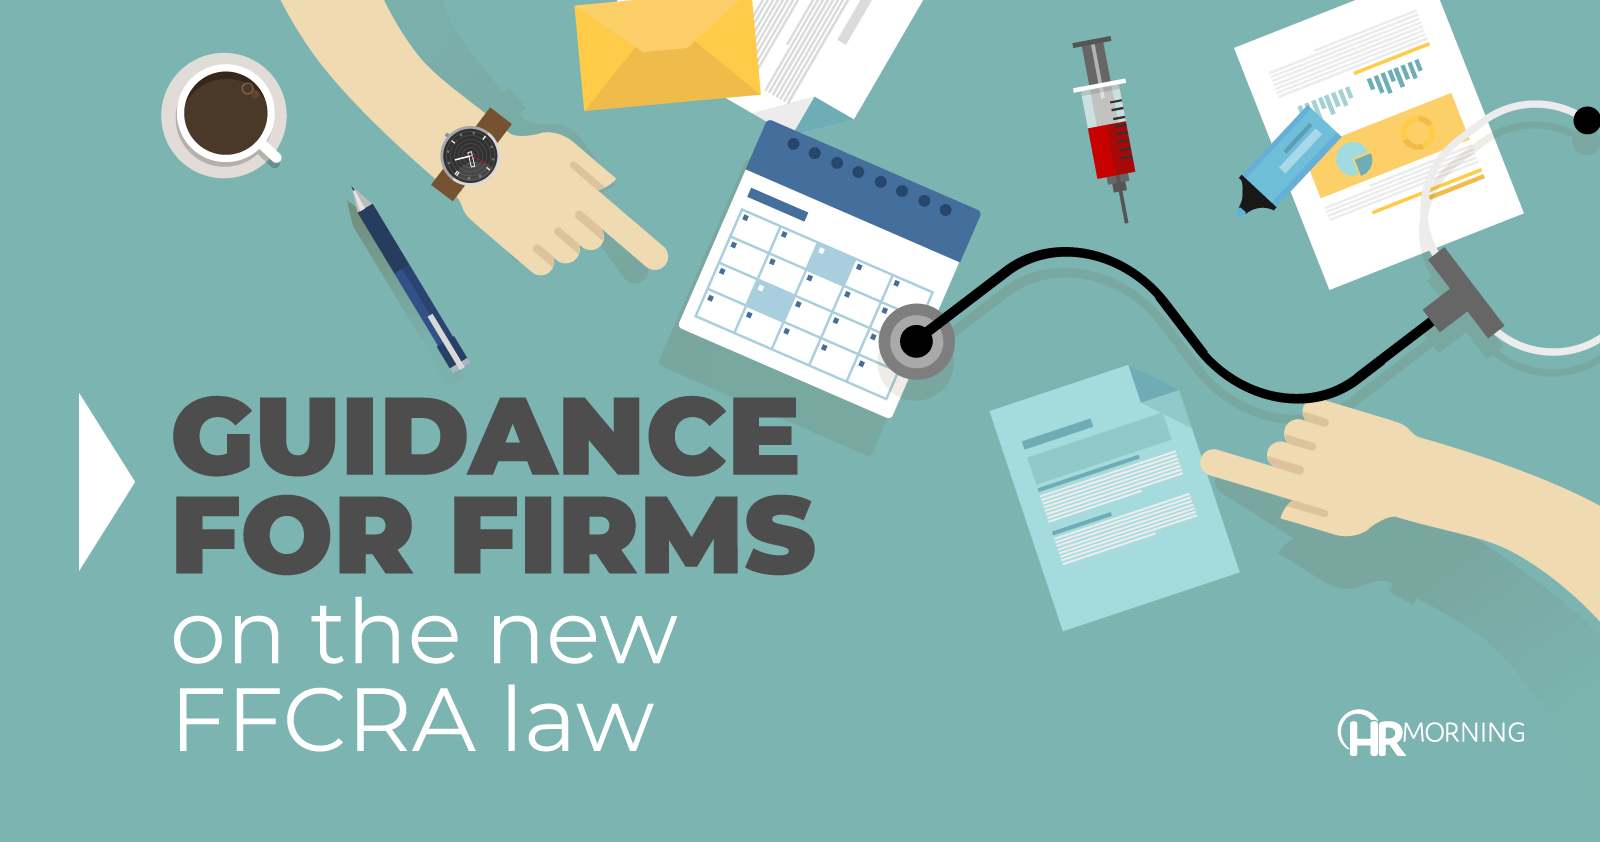 Guidance for firms on the new FFCRA law